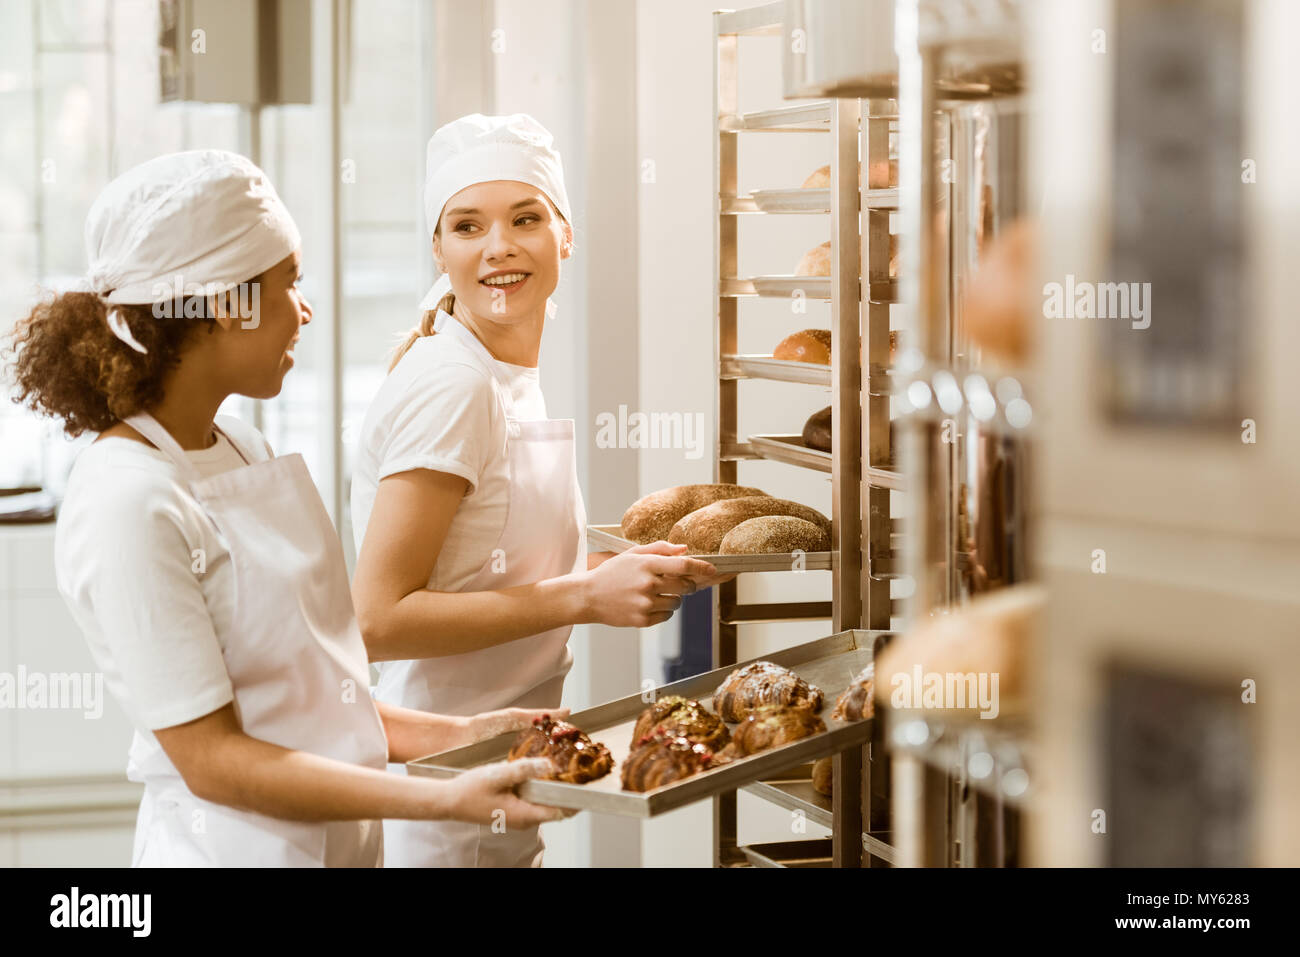 Attractive Female Bakers Putting Fresh Pastry On Shelves At